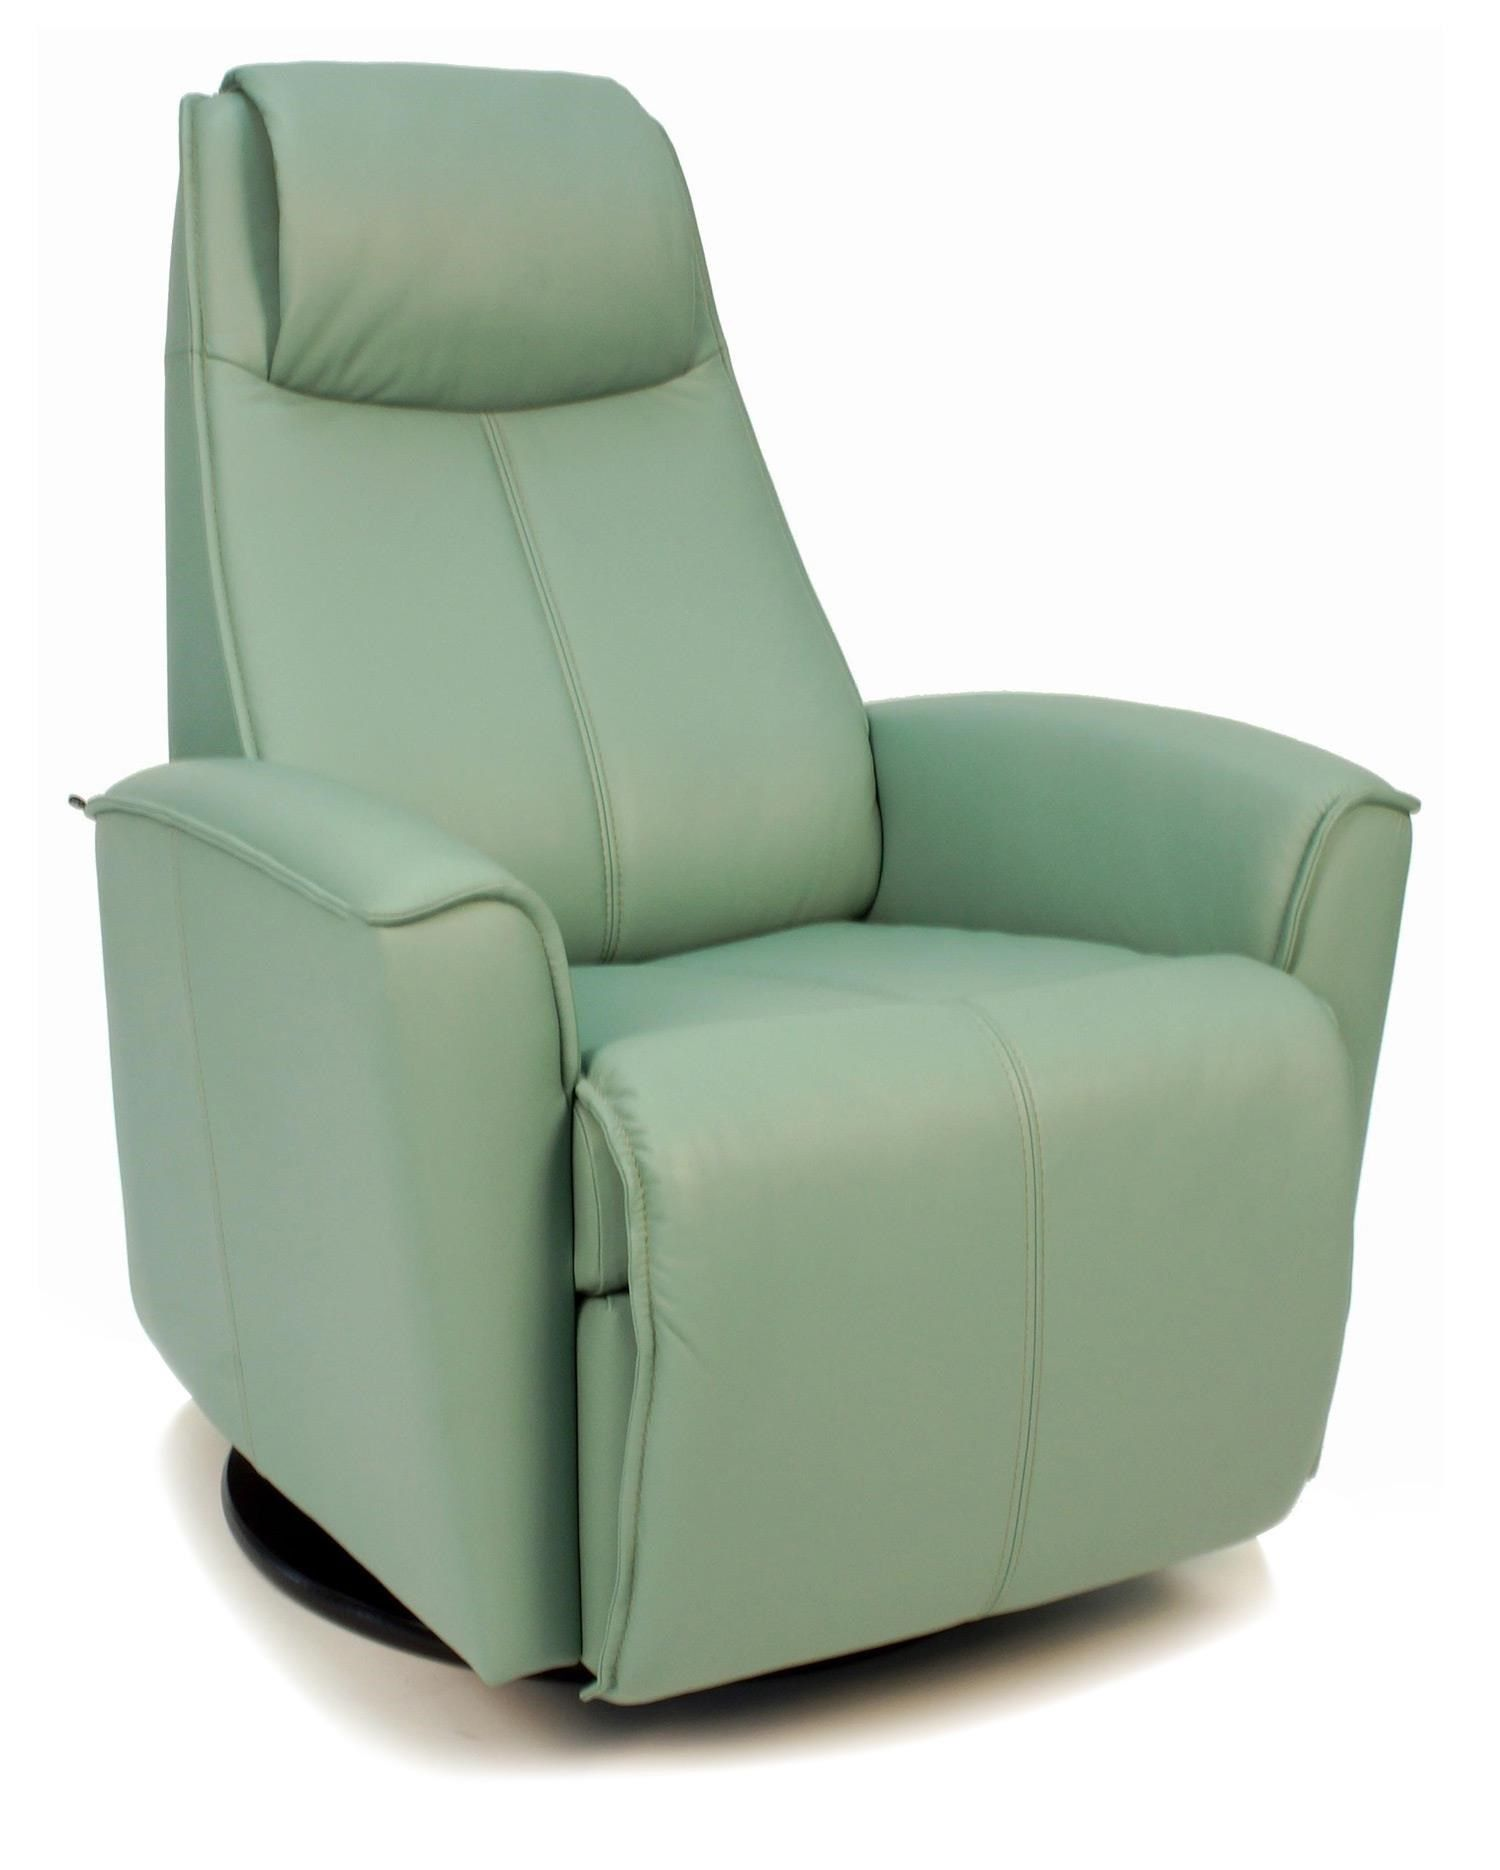 Urban Small Power Swing Relaxer By Fjords By Hjellegjerde Recliner Furniture New England Furniture